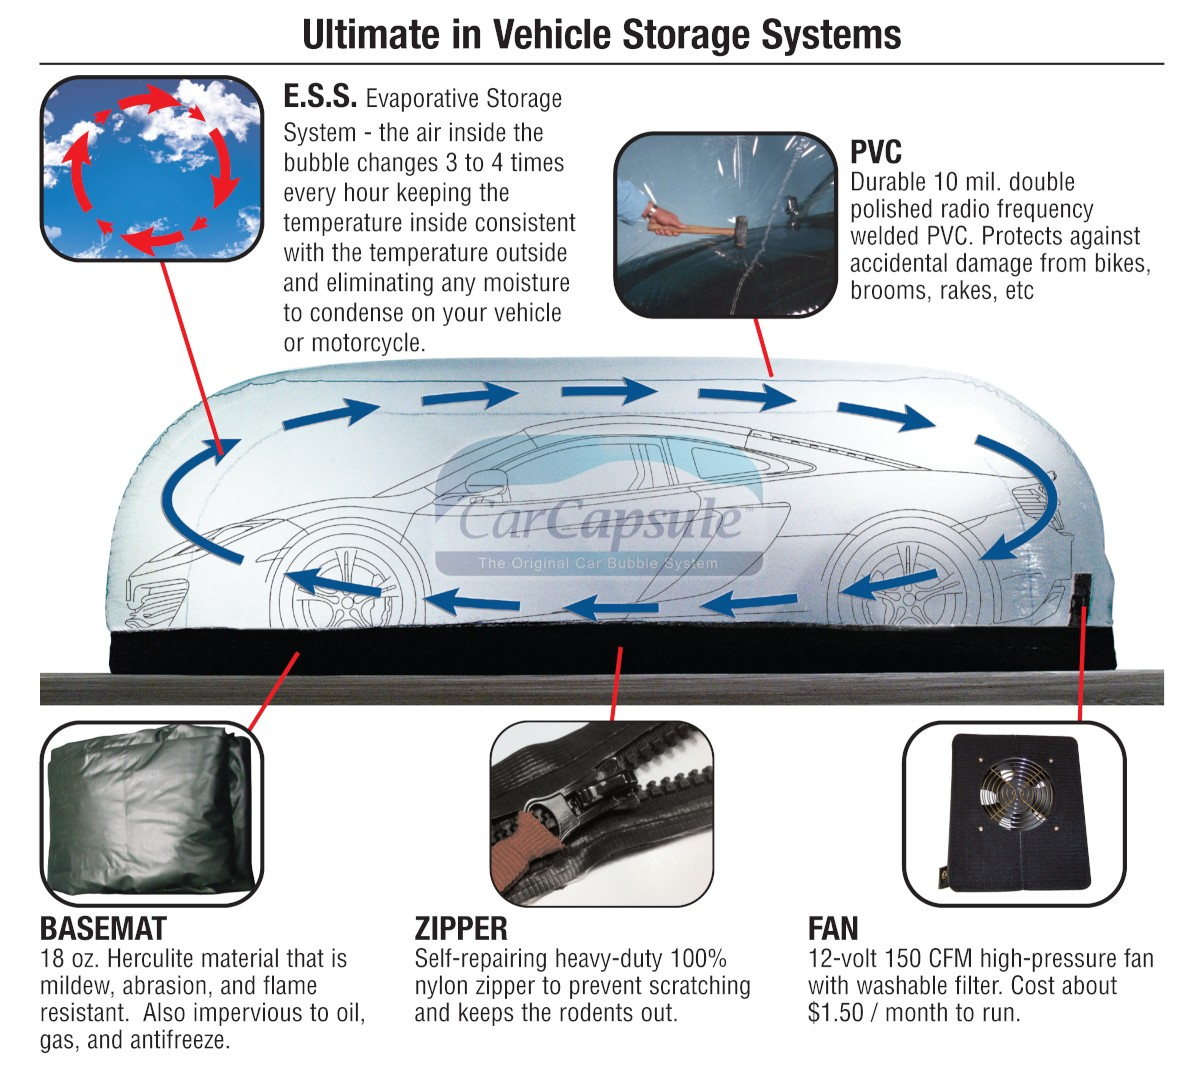 CarCapsule_flow_how_it_works02_6